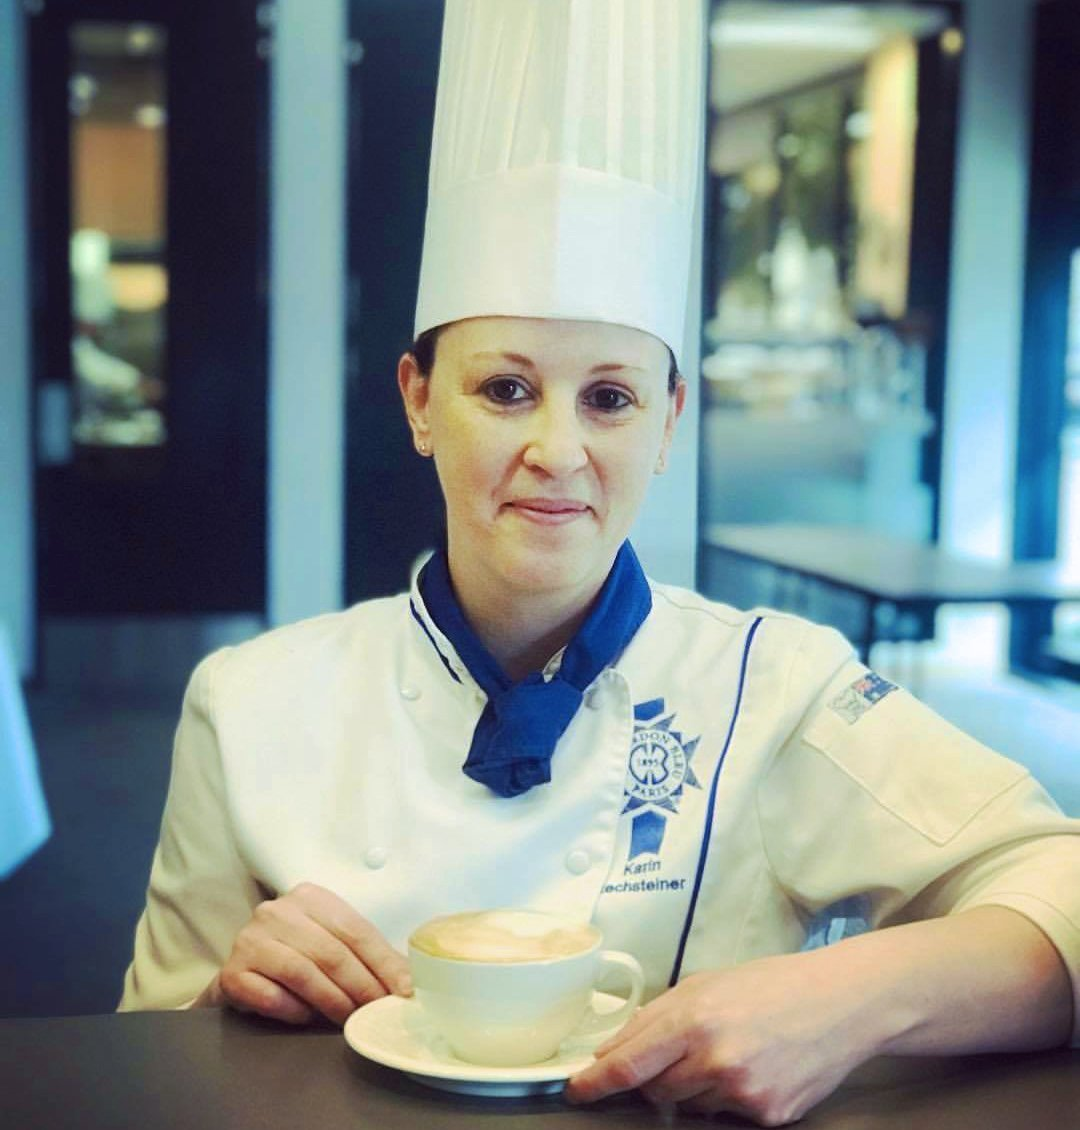 Head Lecturer Karin Rechsteiner in 2020 Culinary Olympics